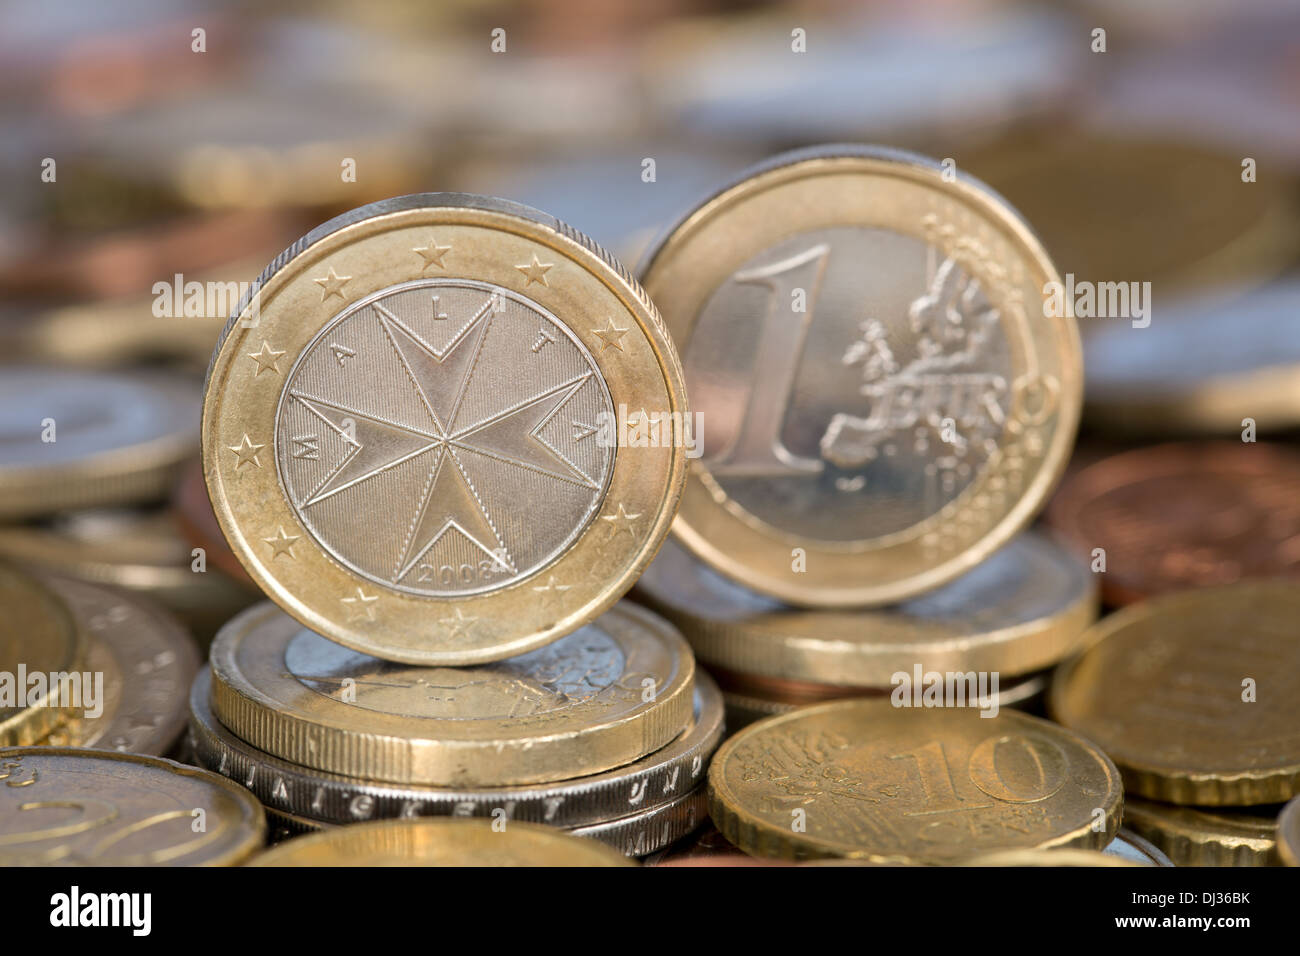 A one Euro coin from the EU member country Malta - Stock Image